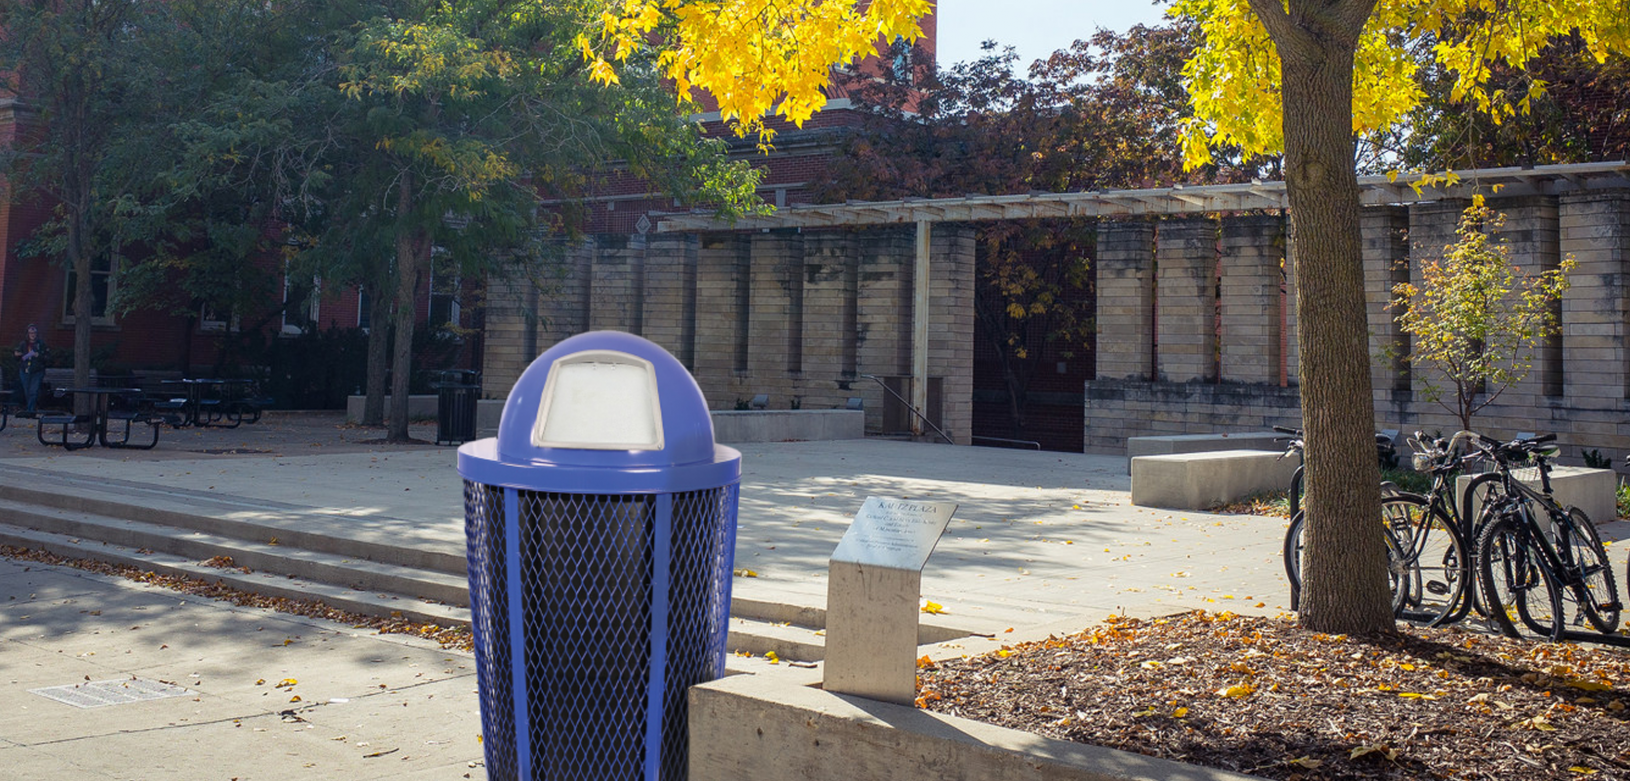 Witt Blue EXP 2020 Base Commercial Waste Receptacle Outdoor Environmental